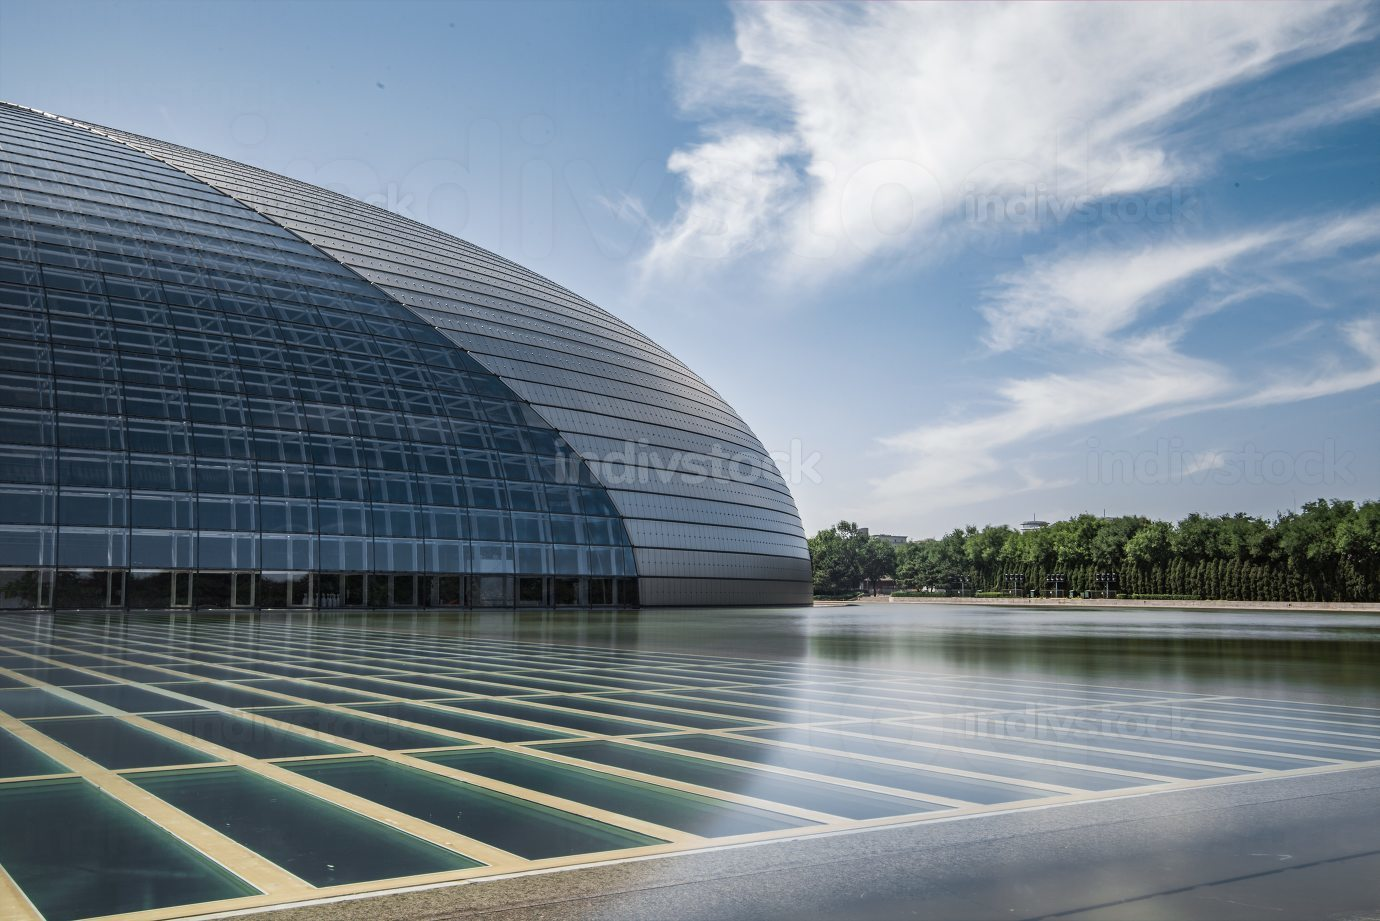 beijing national theater at noon